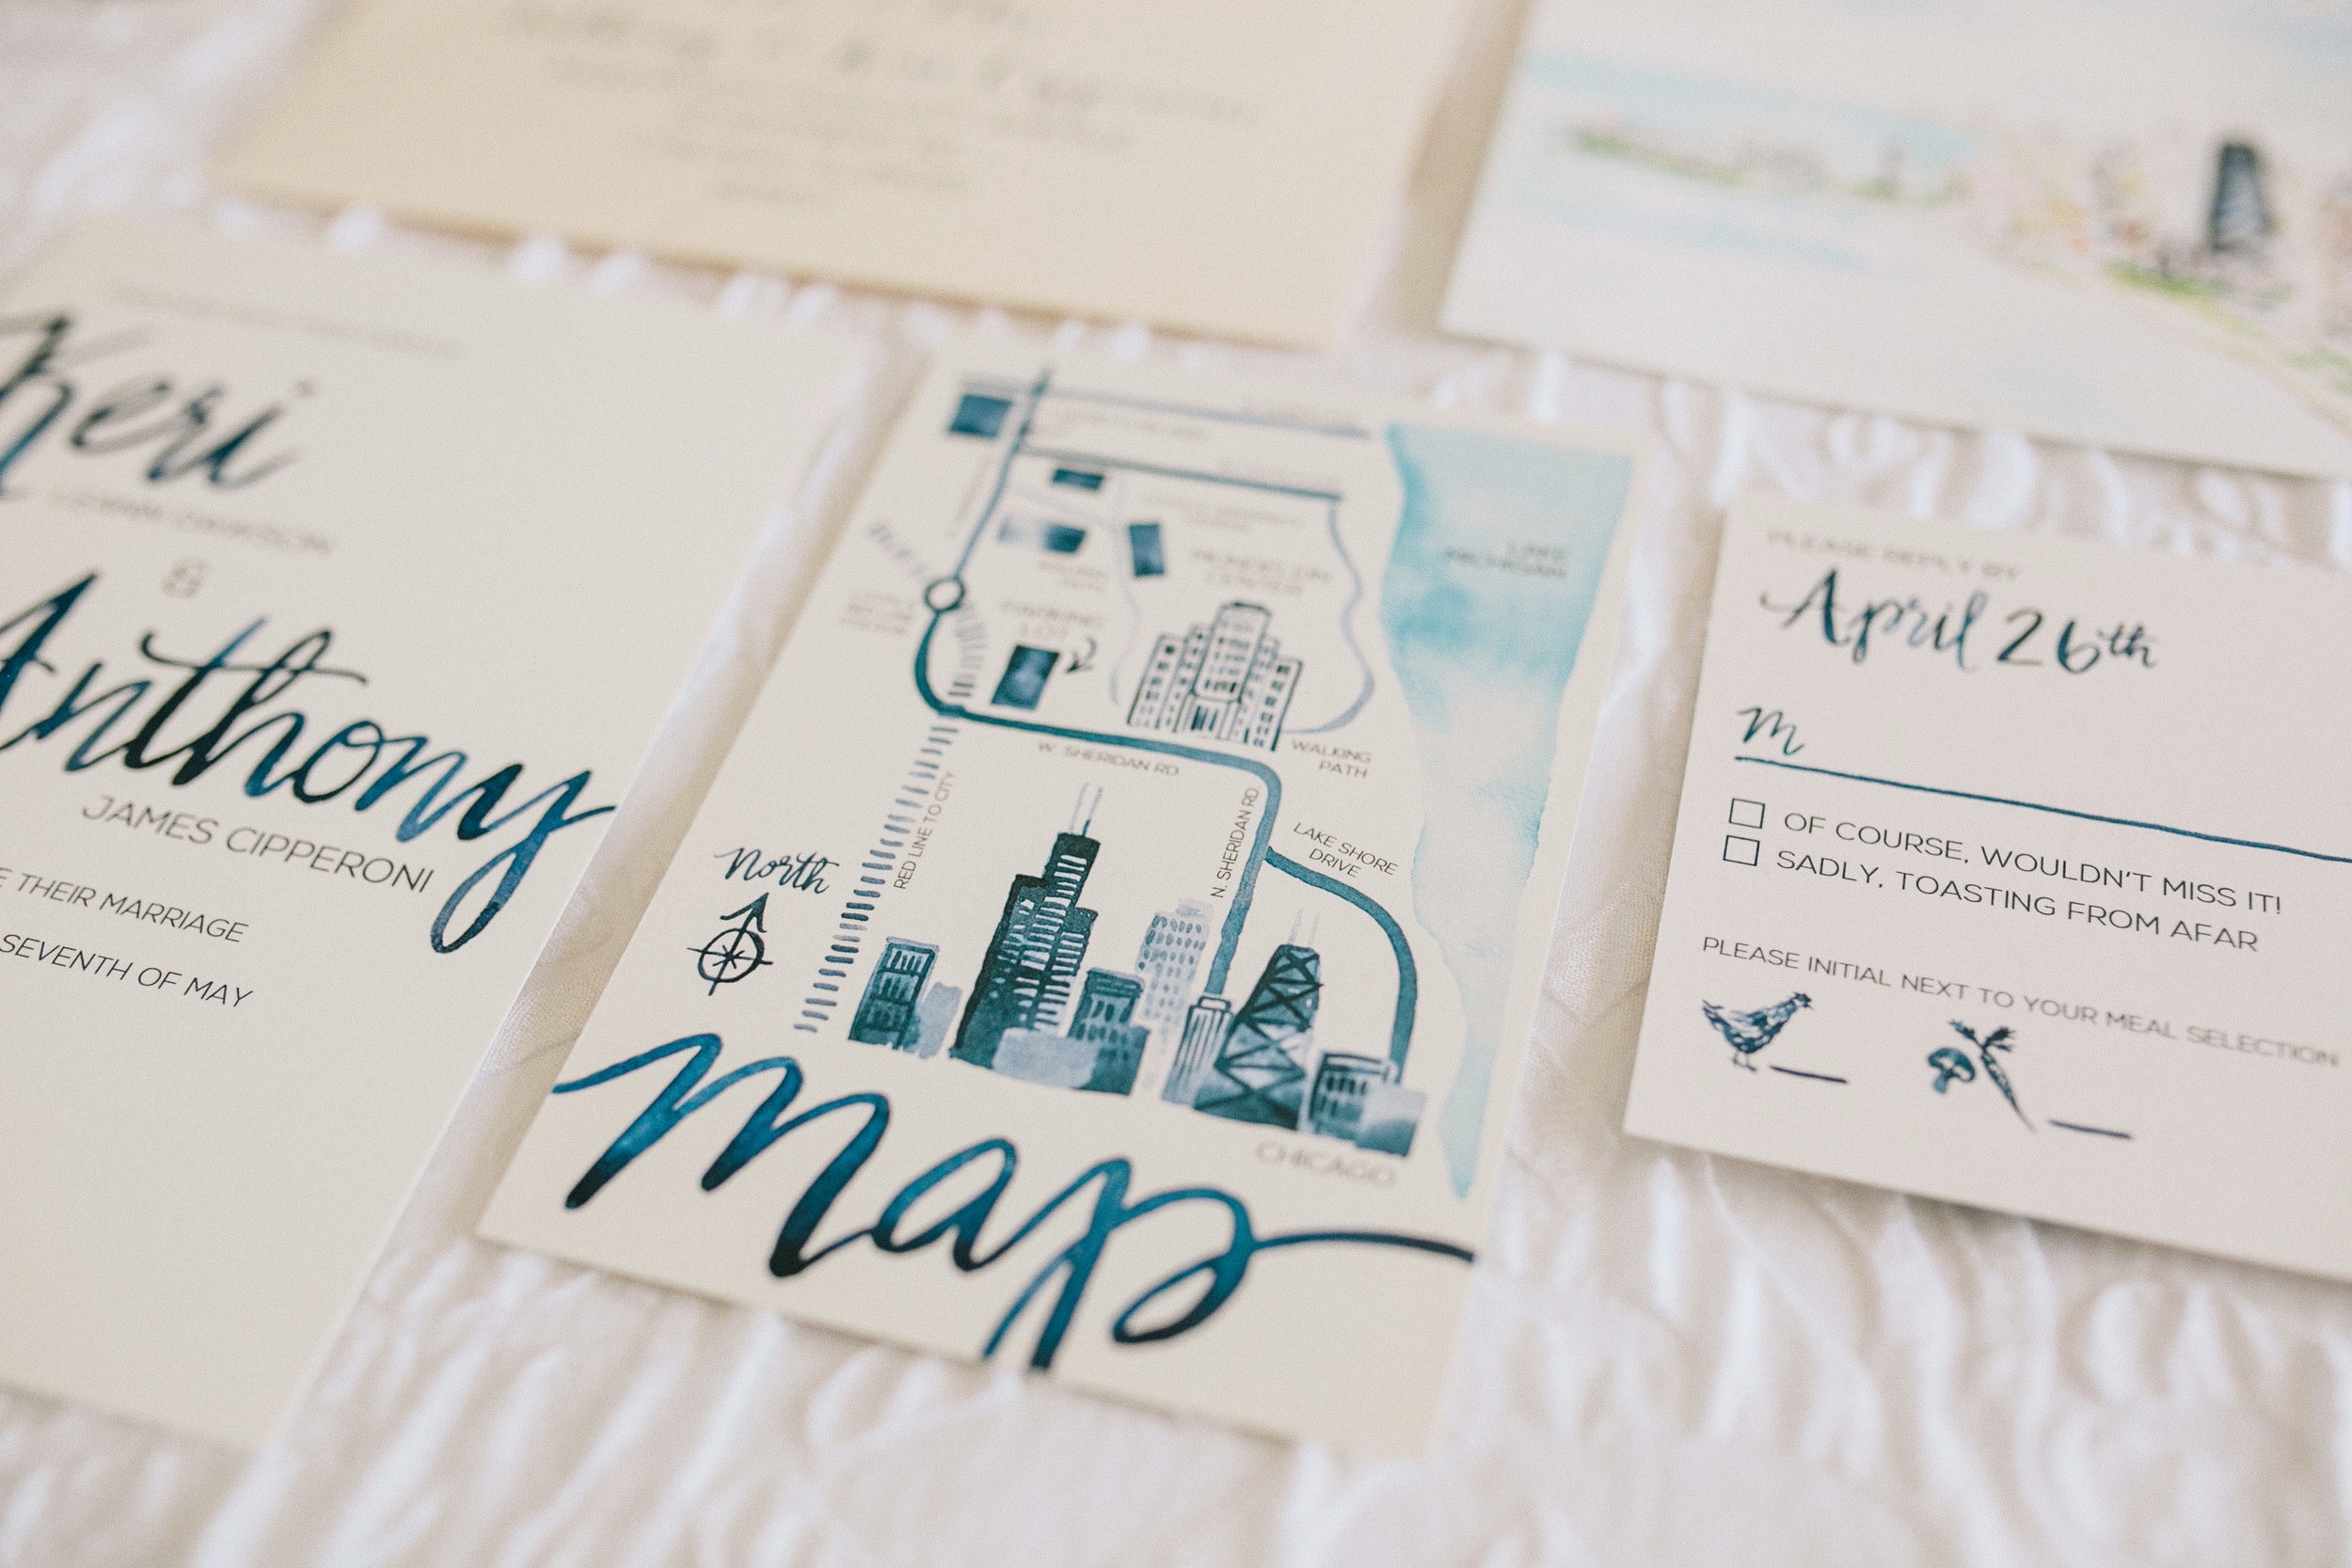 Photos by This Is Feeling. Stationery by EJD Design.